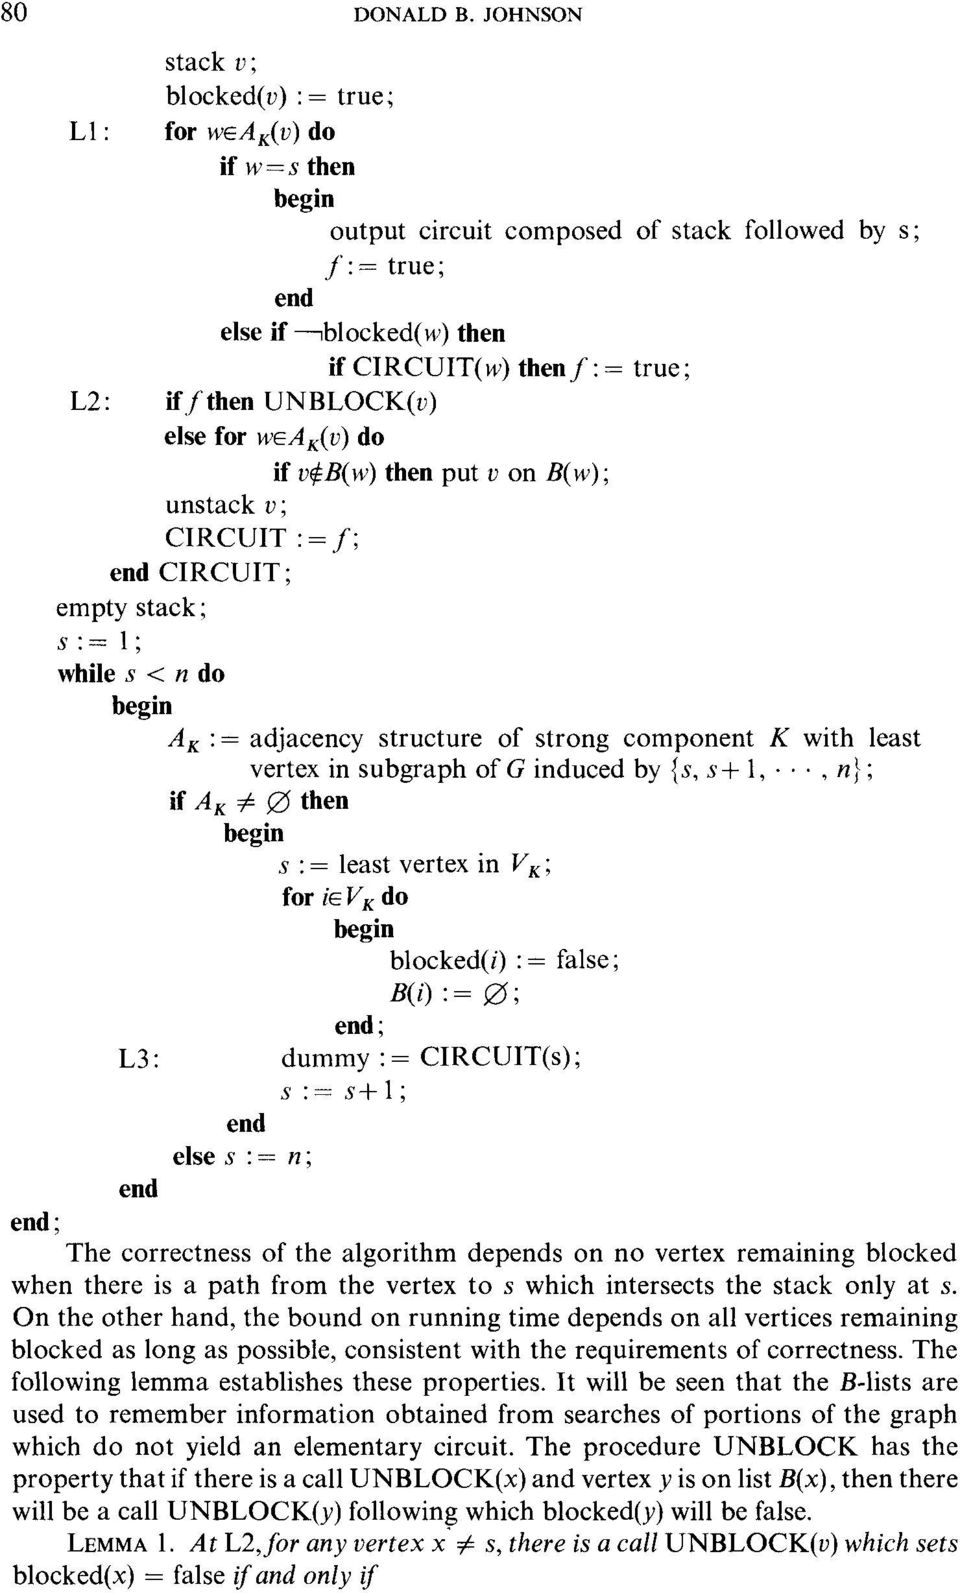 UNBLOCK(v) else for wa:(v) do if vqb(w) then put v on B(w); unstack v; CIRCUIT := f; end CIRCUIT; empty stack; s:=l; while s < n do A:= adjacency structure of strong component K with least if A -